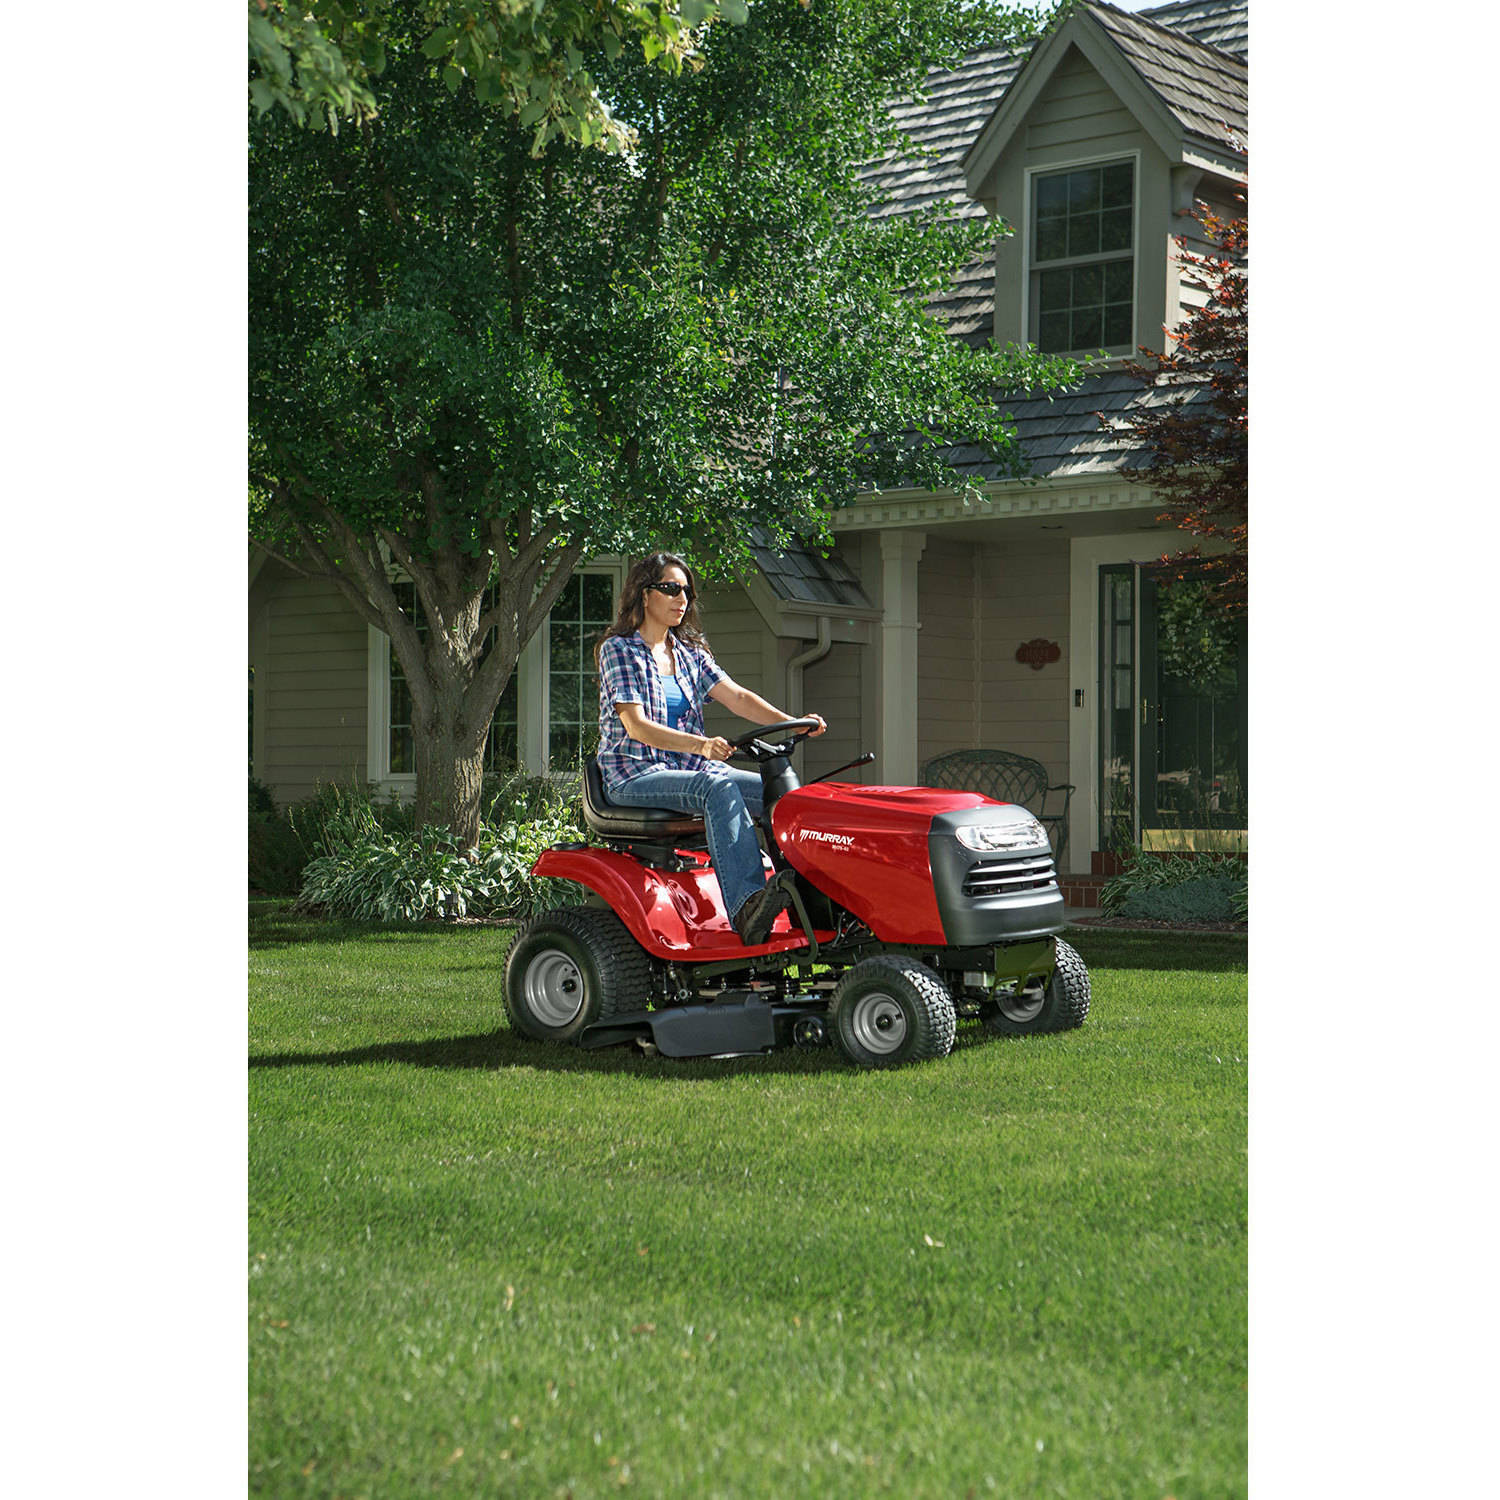 Murray 175 Hp Briggs Stratton 42 Riding Lawn Mower Have A 145 Horsepower And Engine That Was